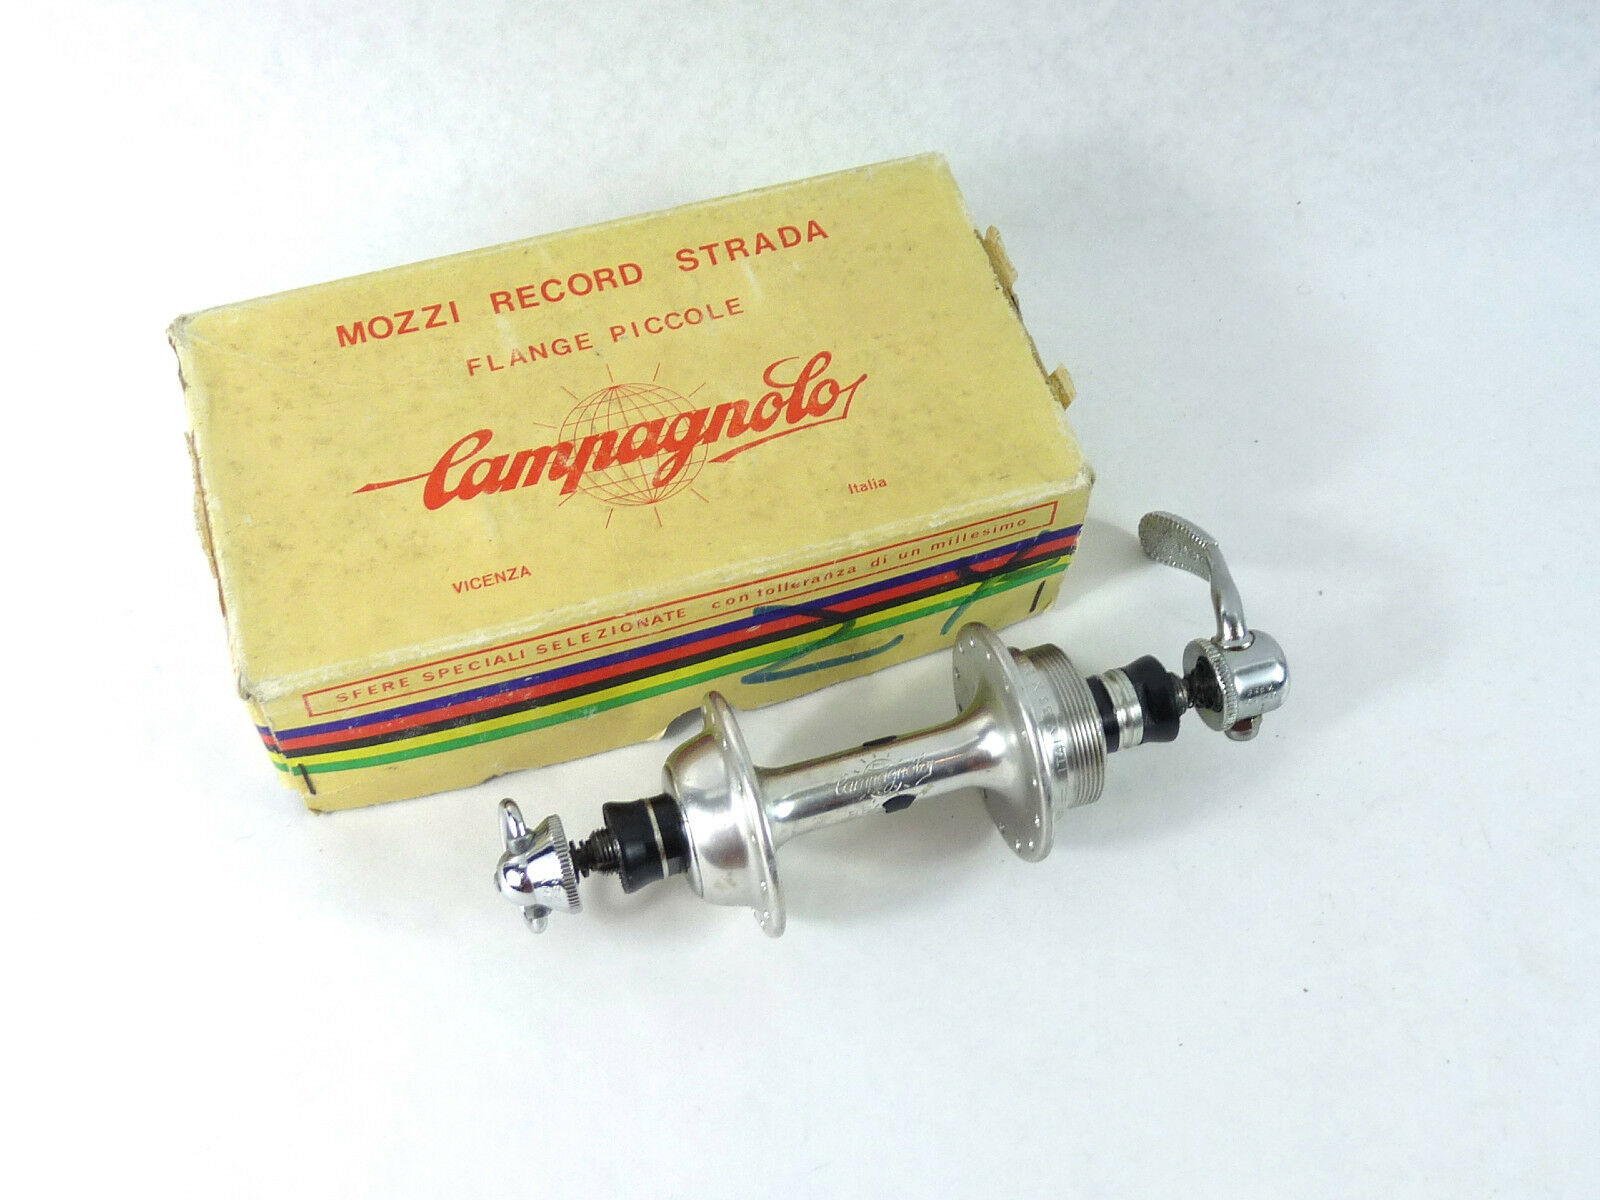 Campagnolo Record  Hub Low Flange Rear 28H Italian thread 120mm 28 NOS  to provide you with a pleasant online shopping